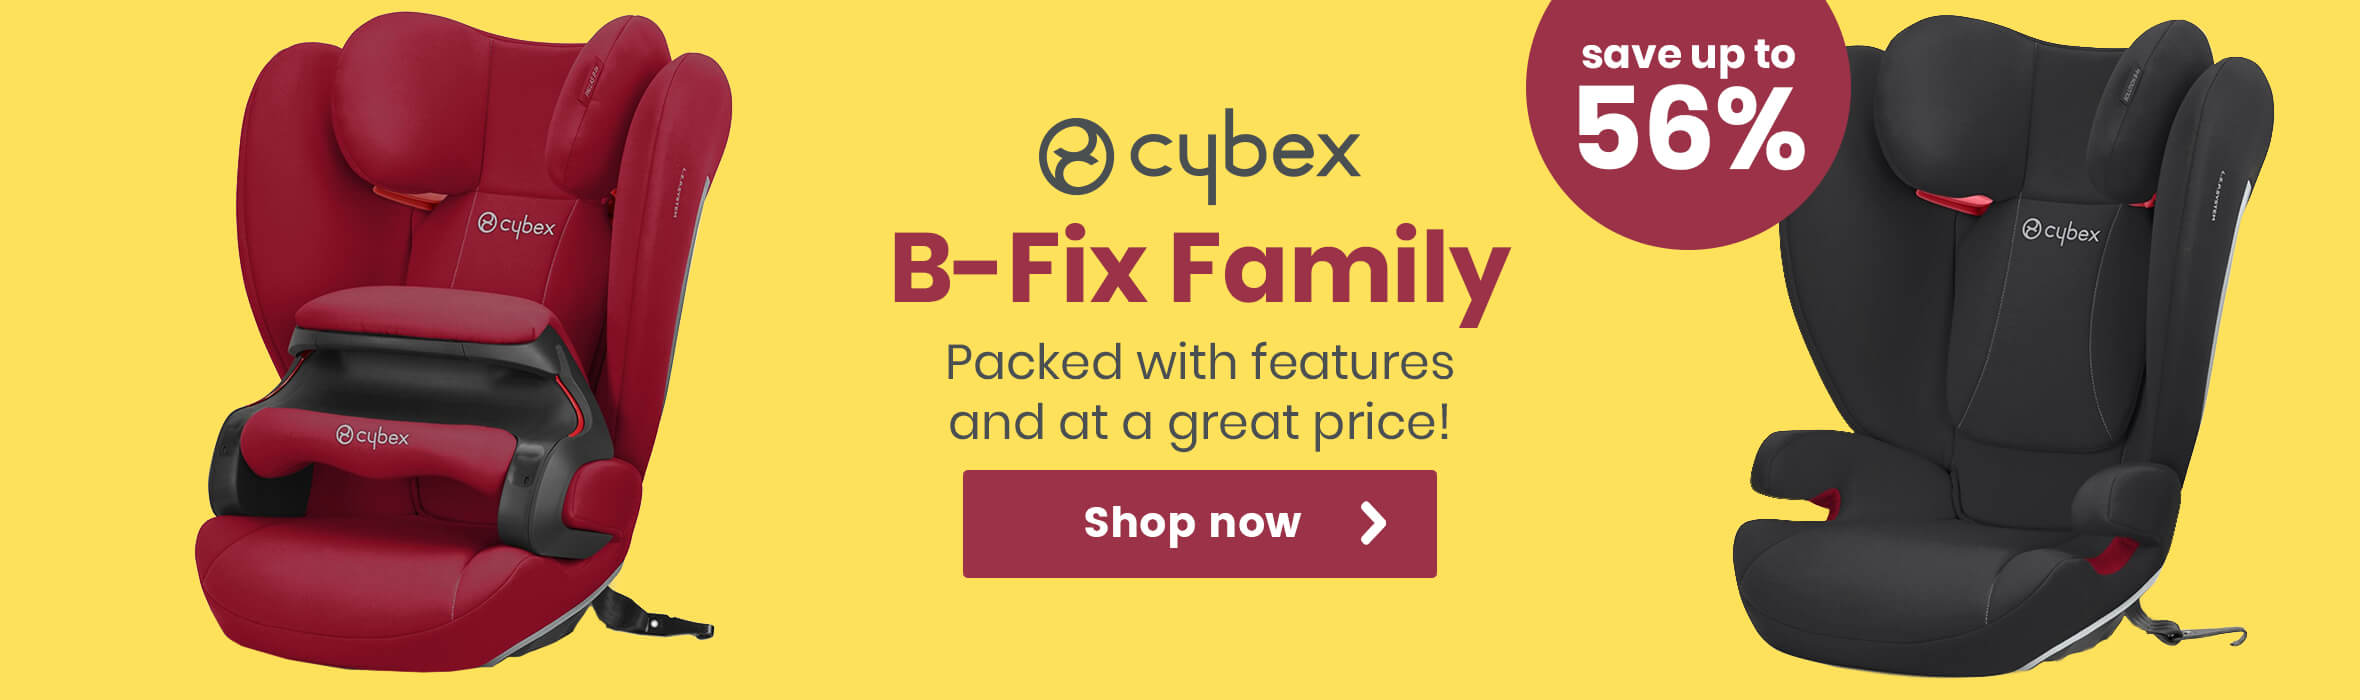 Cybex B-Fix family - Save up to 56%